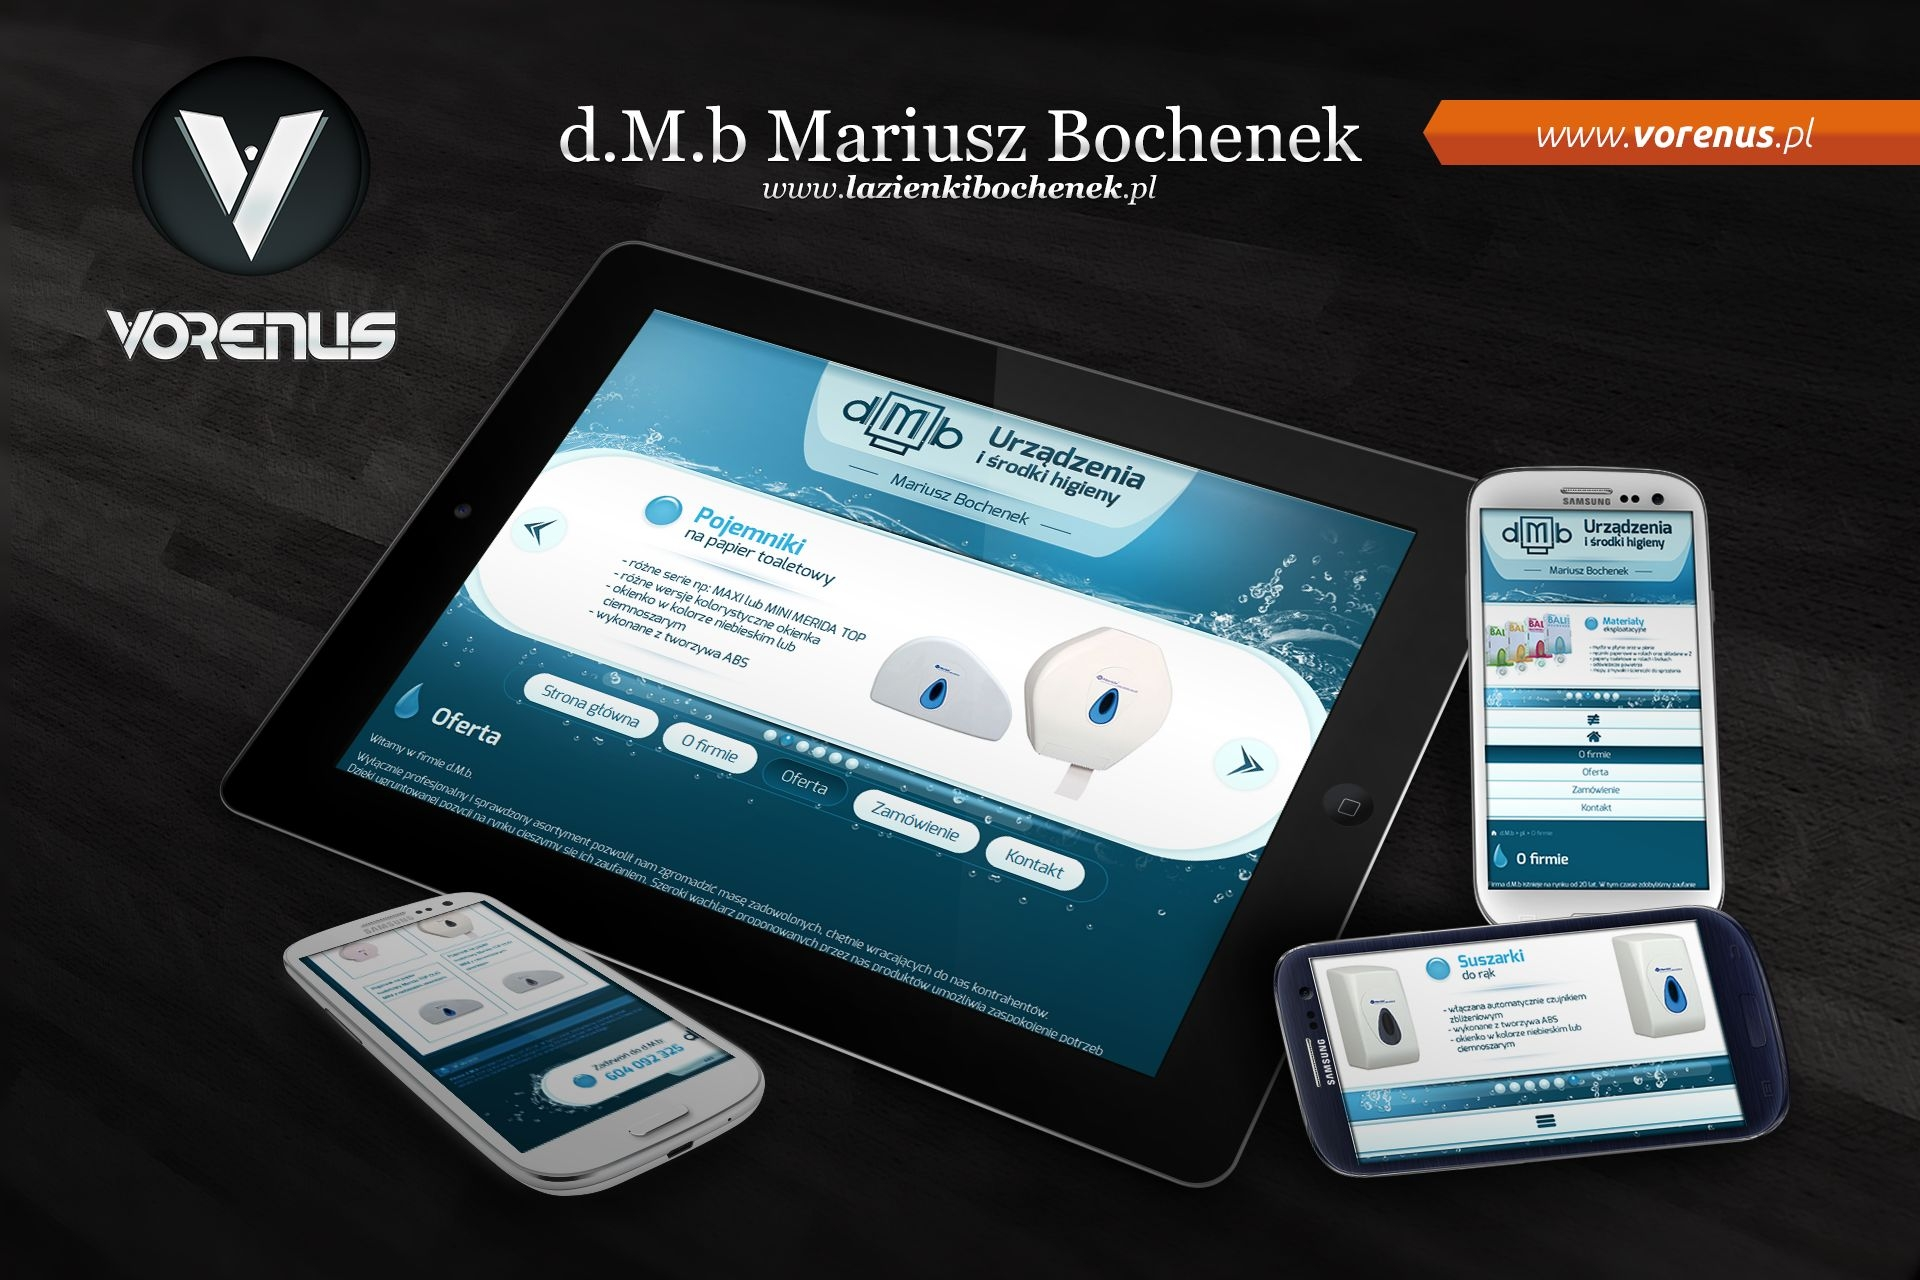 d.M.b Website. RWD - Responsive Web Design